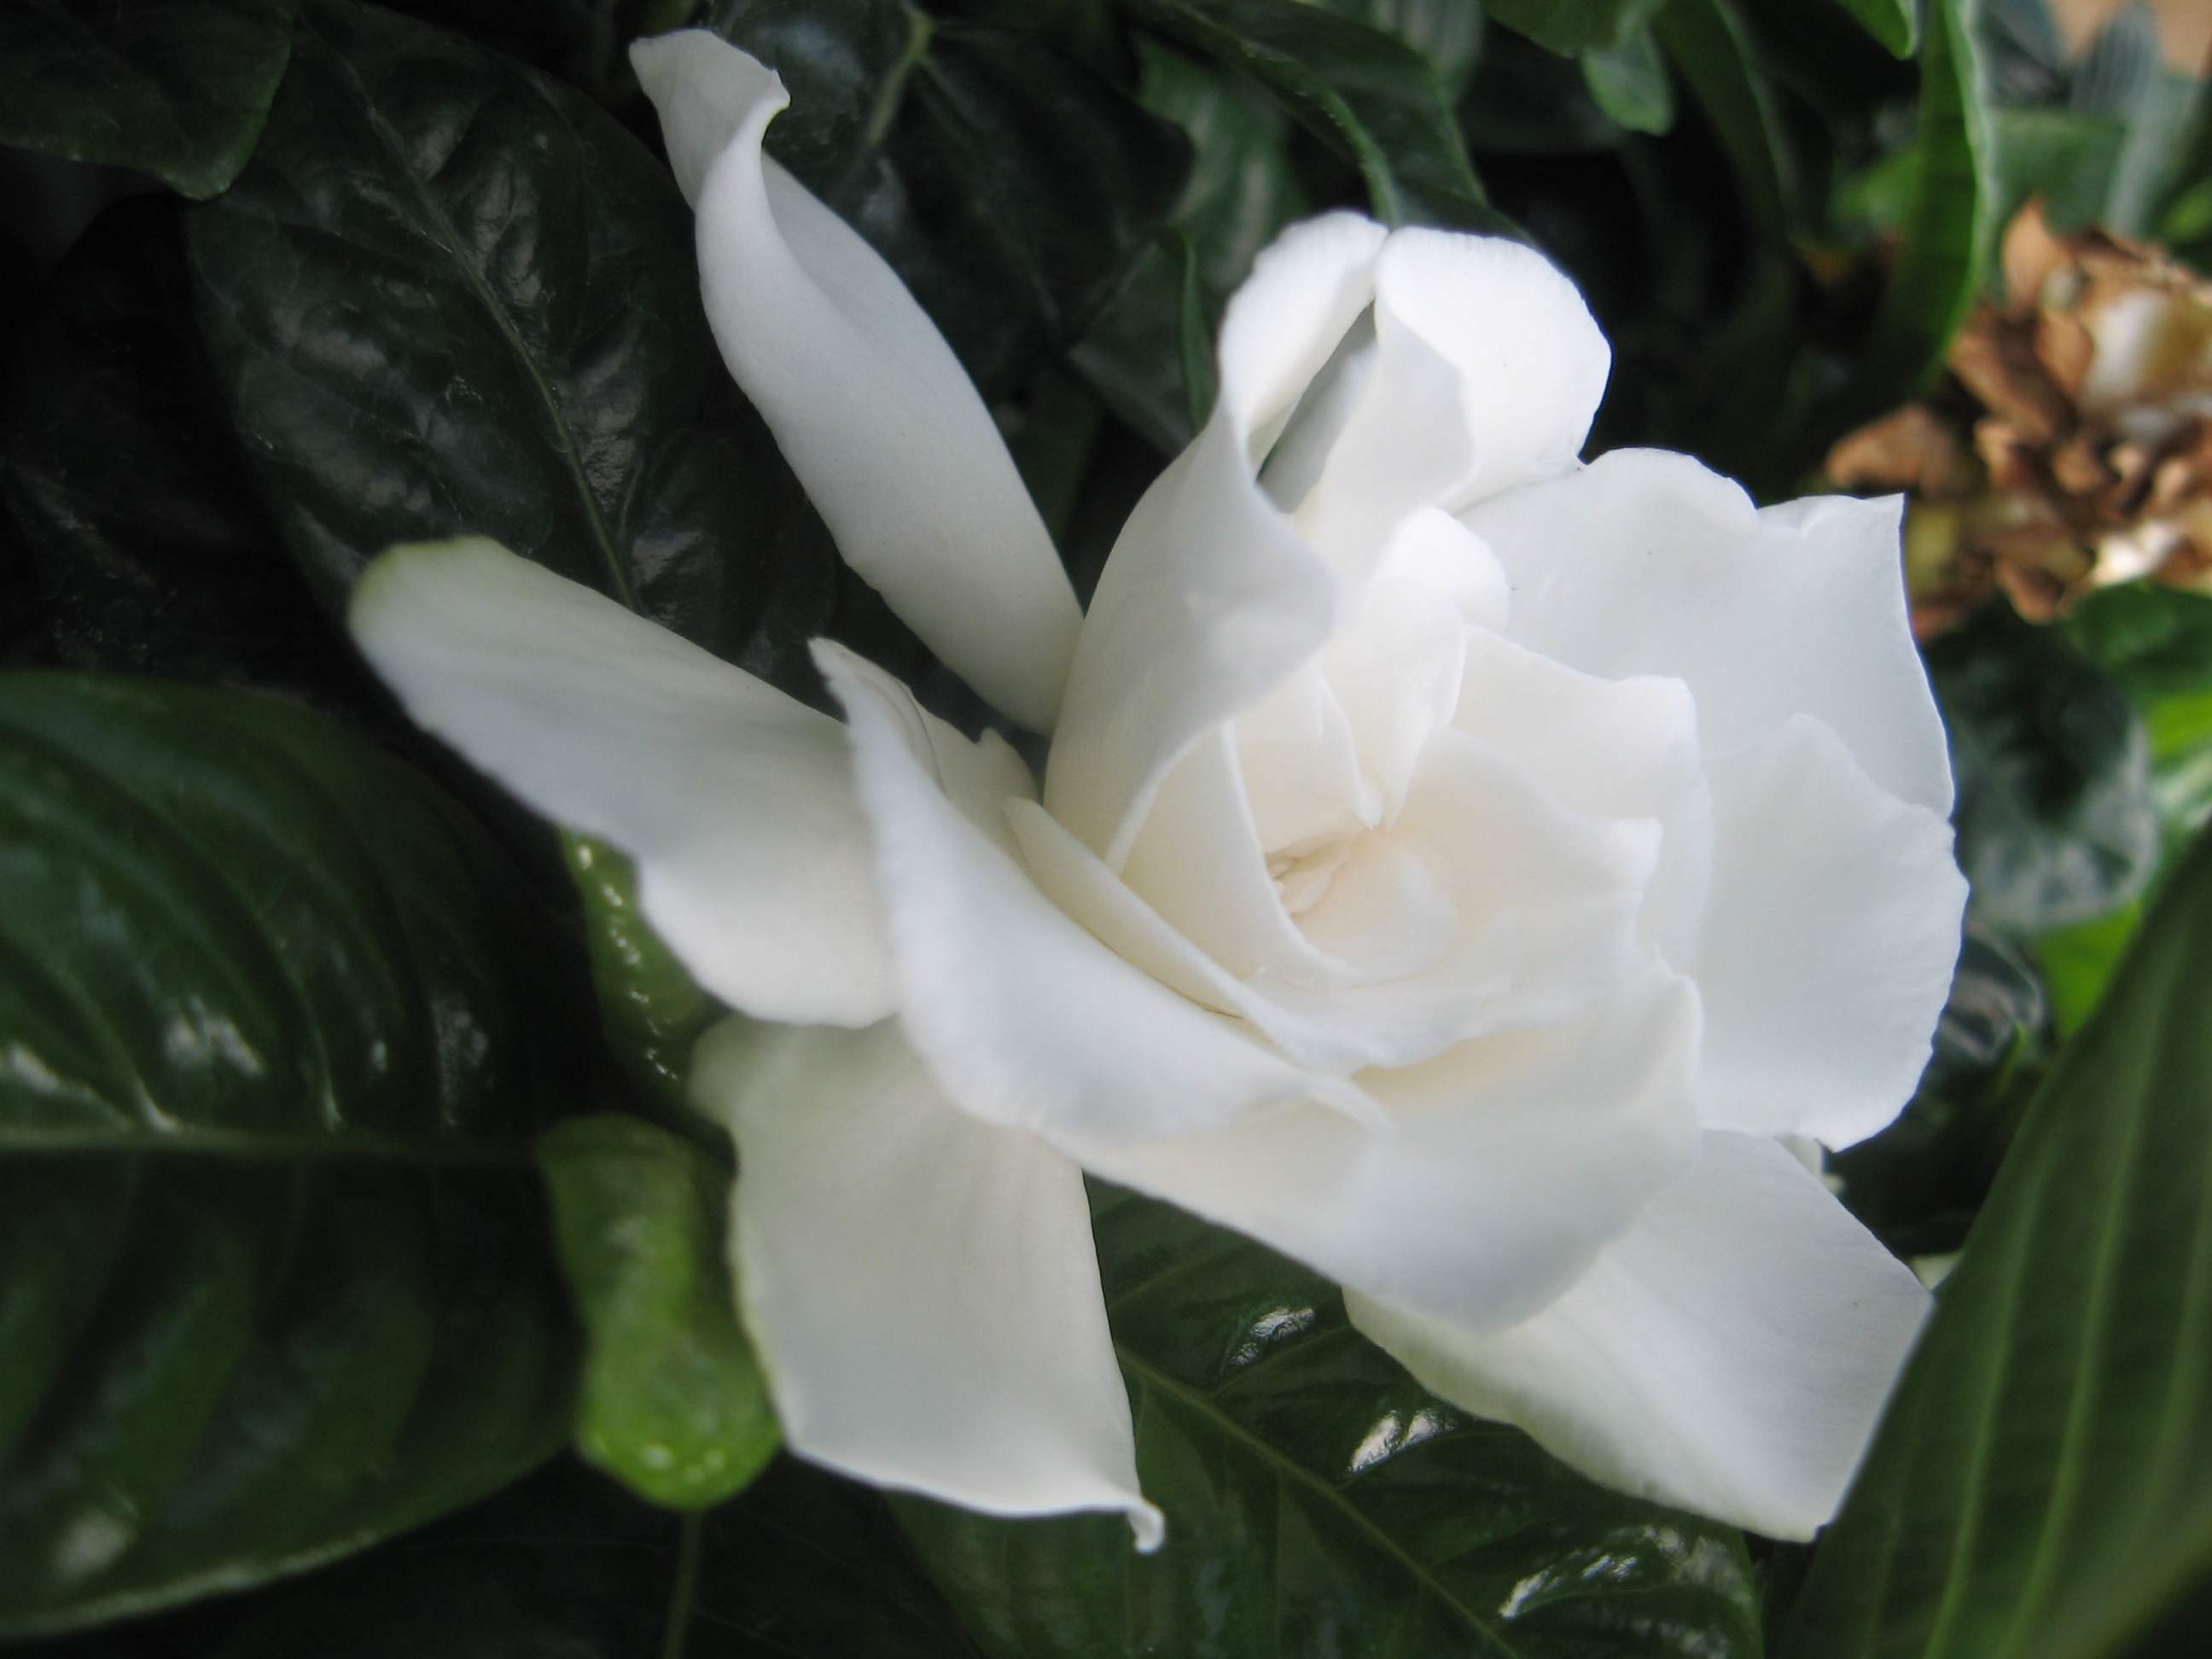 Vetchii gardenia live plant intensely fragrant double white flowers vetchii gardenia live plant intensely fragrant double white flowers spring summer bloomer starter size plant 4 mightylinksfo